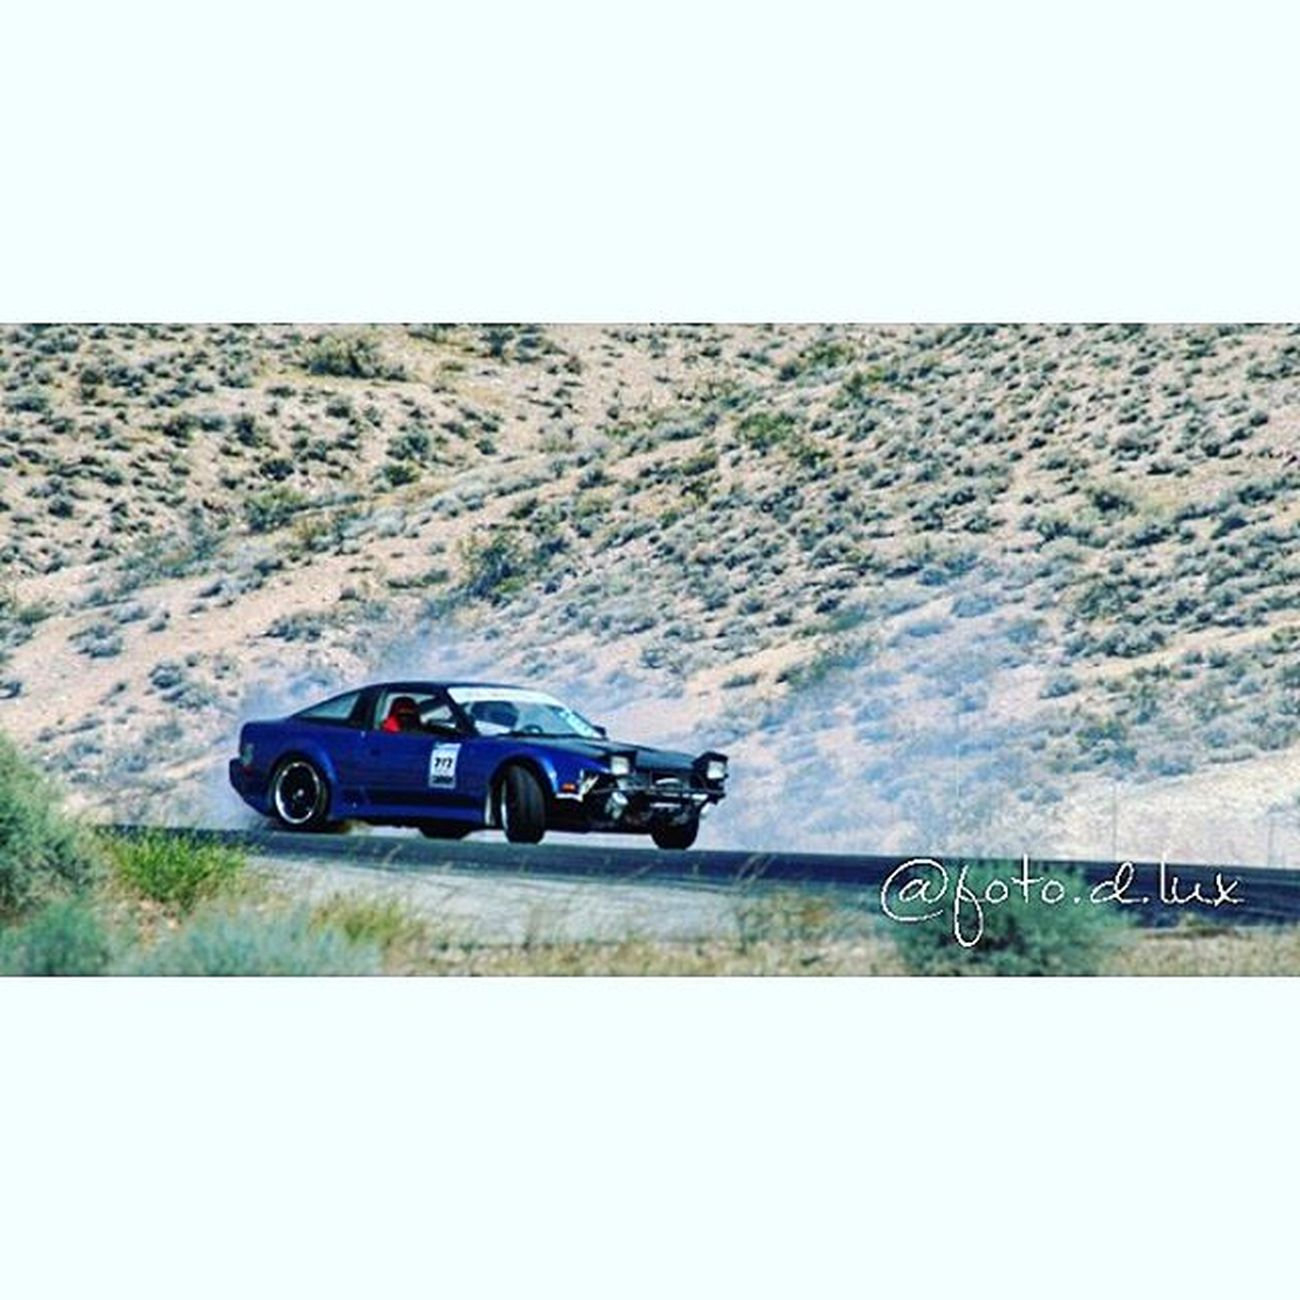 Landscape and car drifting on point. Tag owner of car Nissan 240sx 240 Topdrift Topdriftlimited Blue240sx Tireslayer Driftingaway Formuladrift Instalike Instadaily Willowsprings